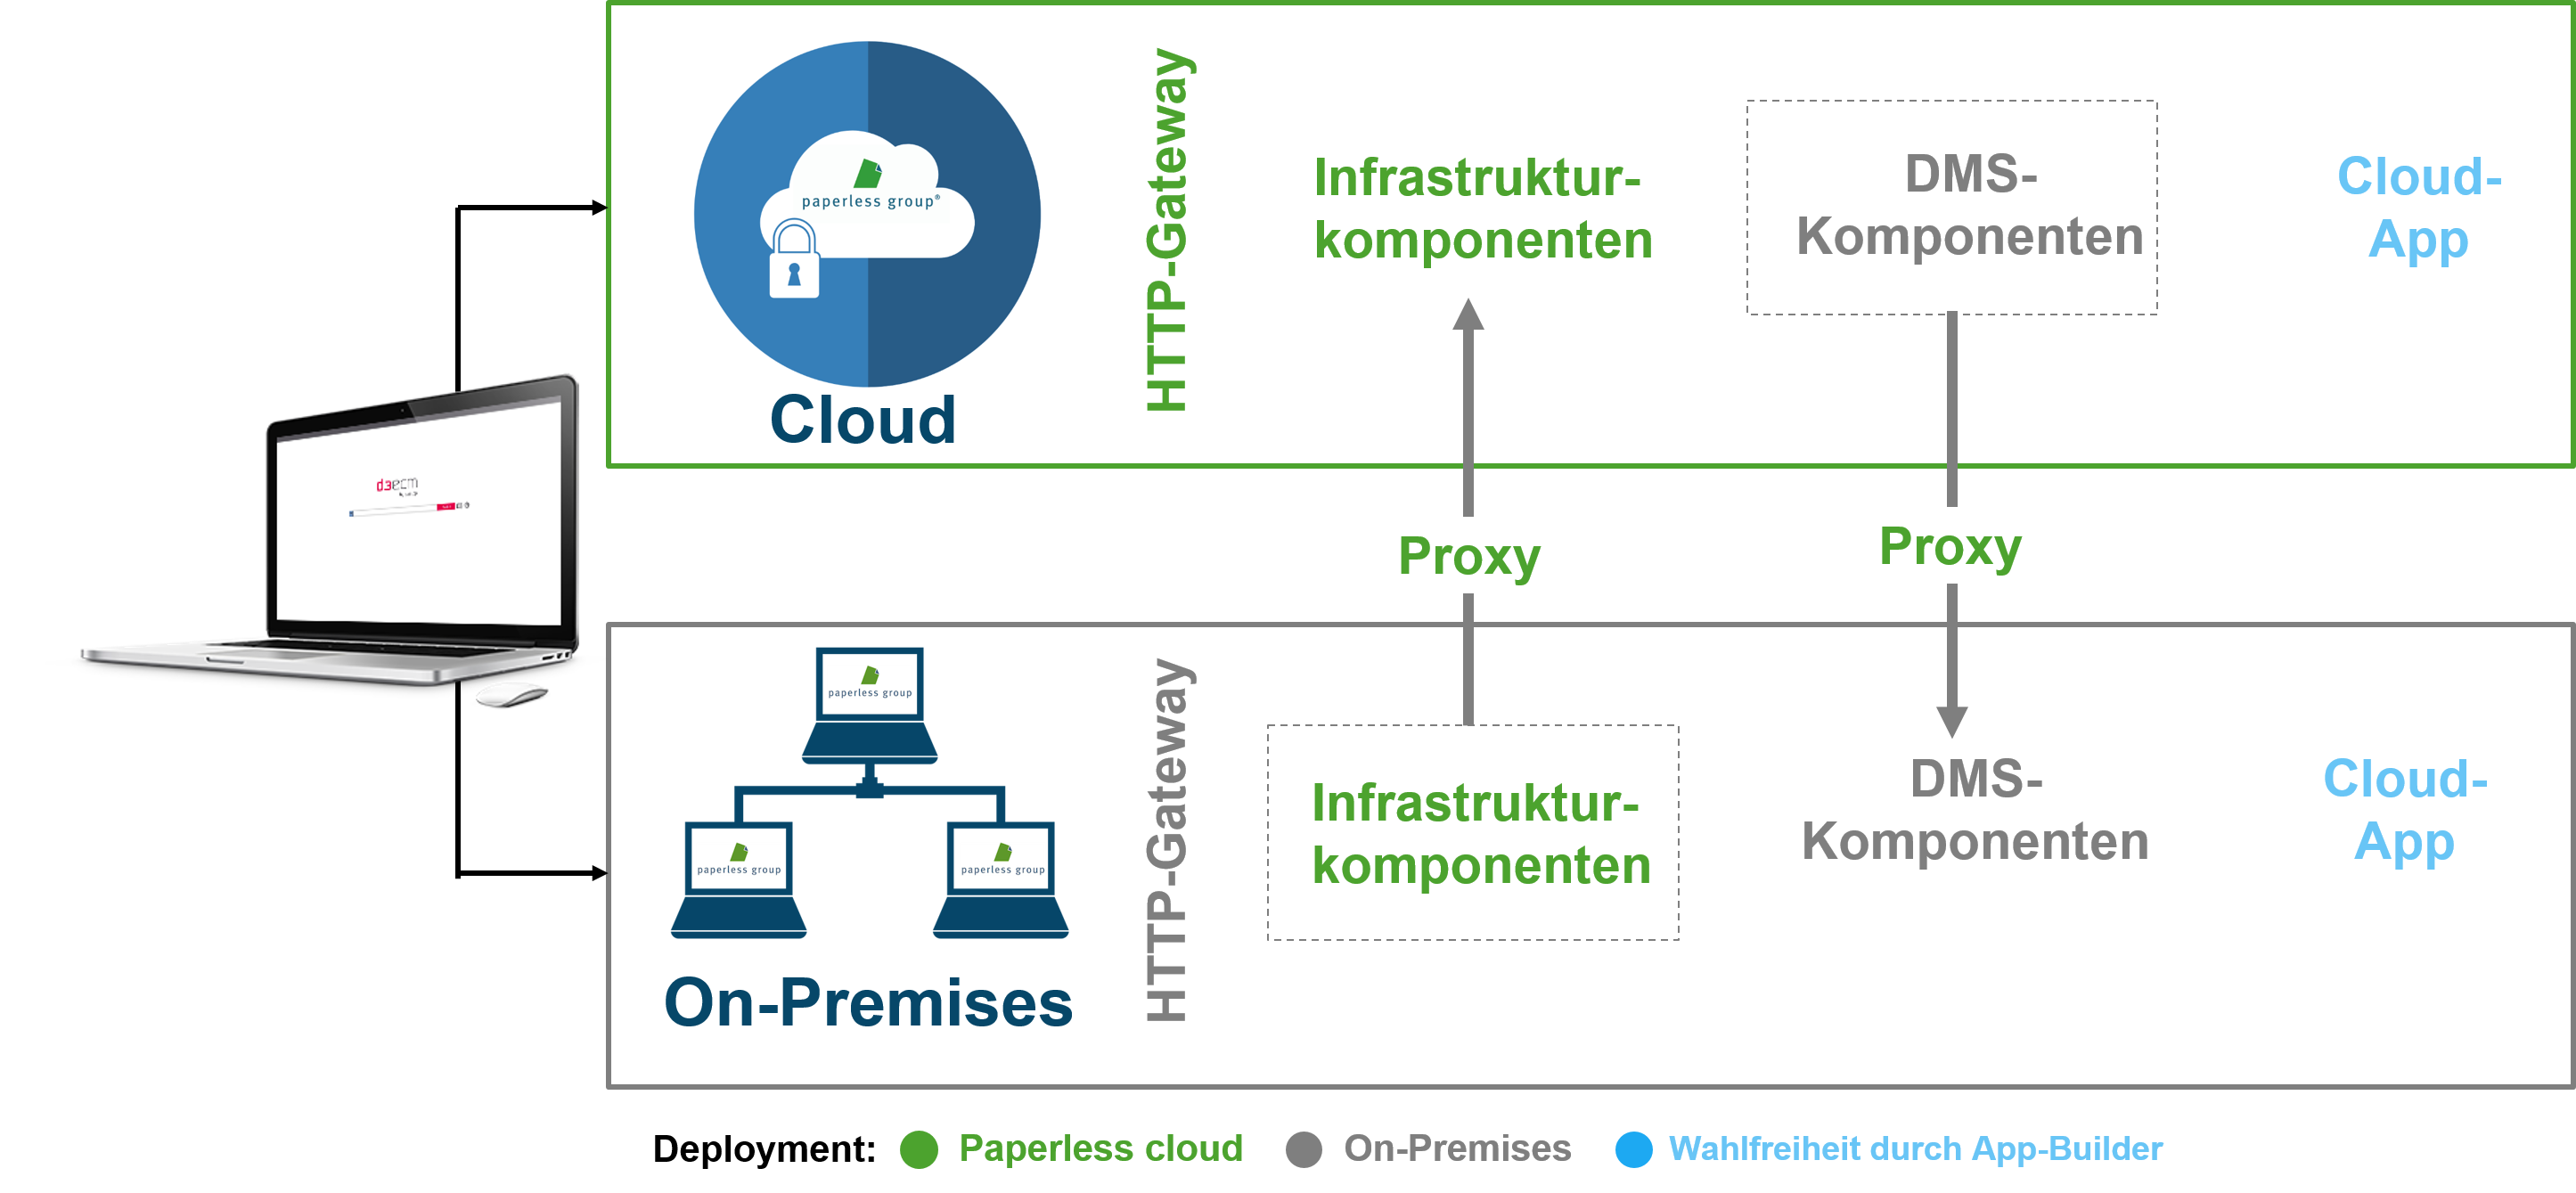 Hybride Cloud- On-premises und Cloud vereint 4